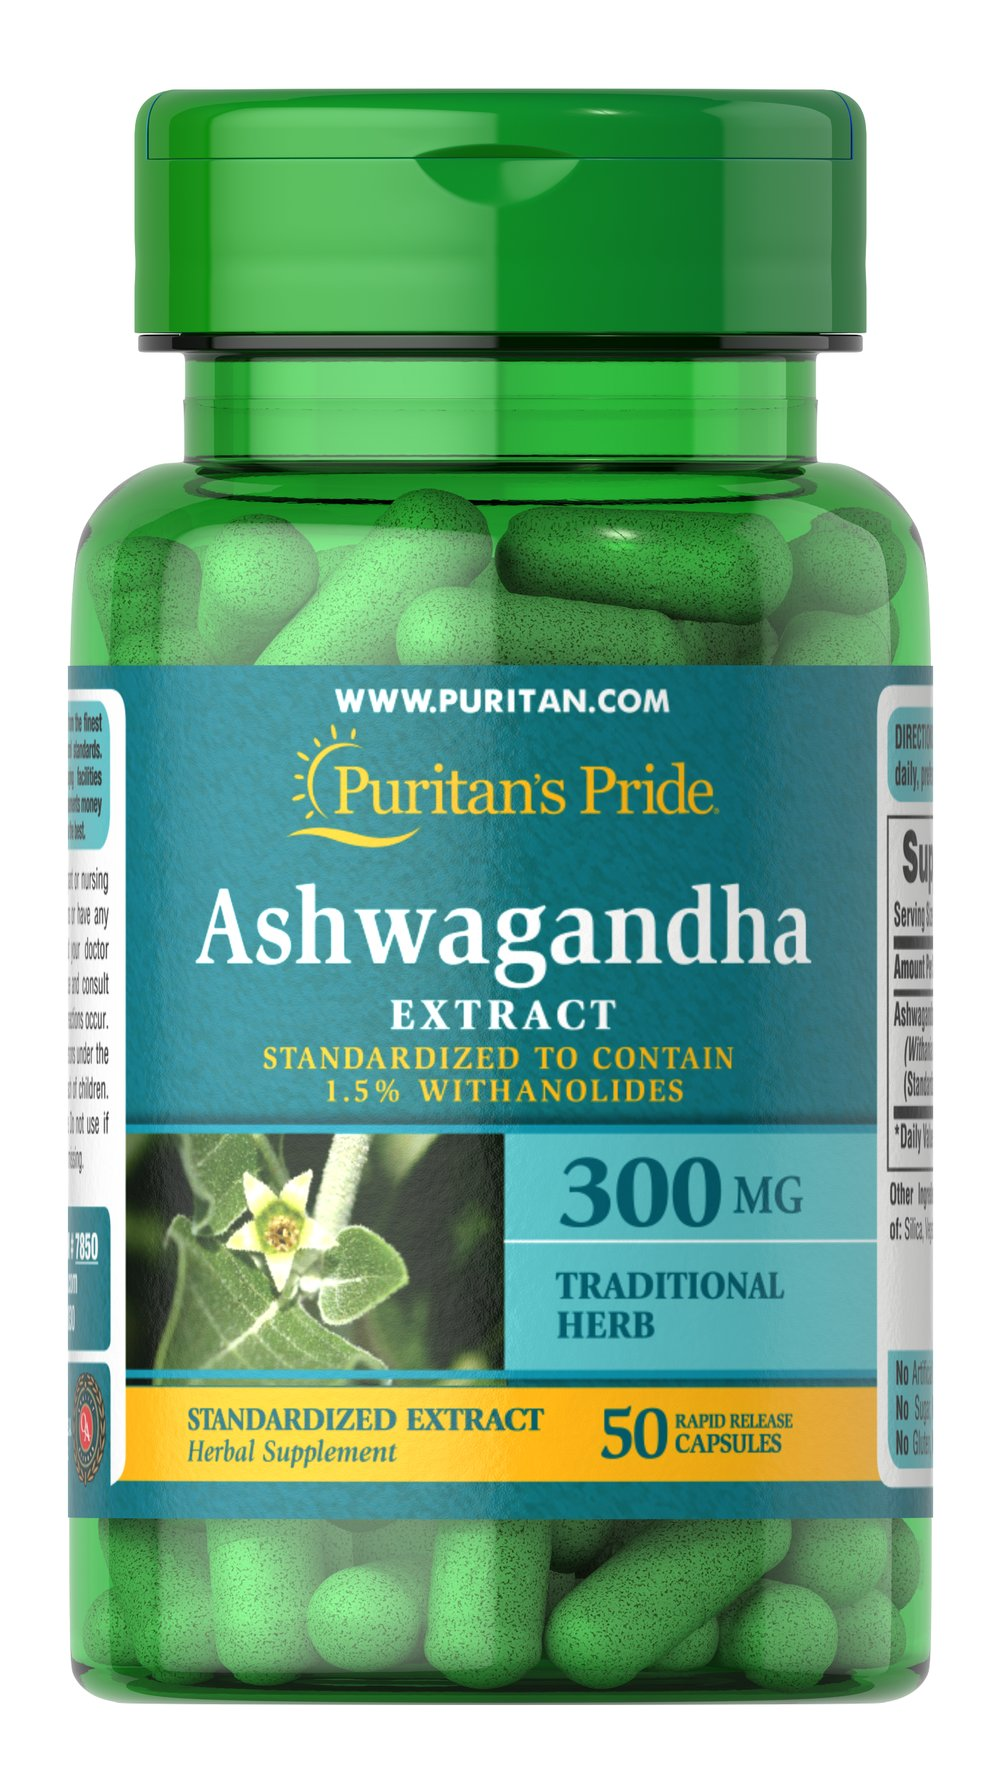 Ashwagandha Standardized Extract 300 mg  50 Capsules 300 mg $9.49